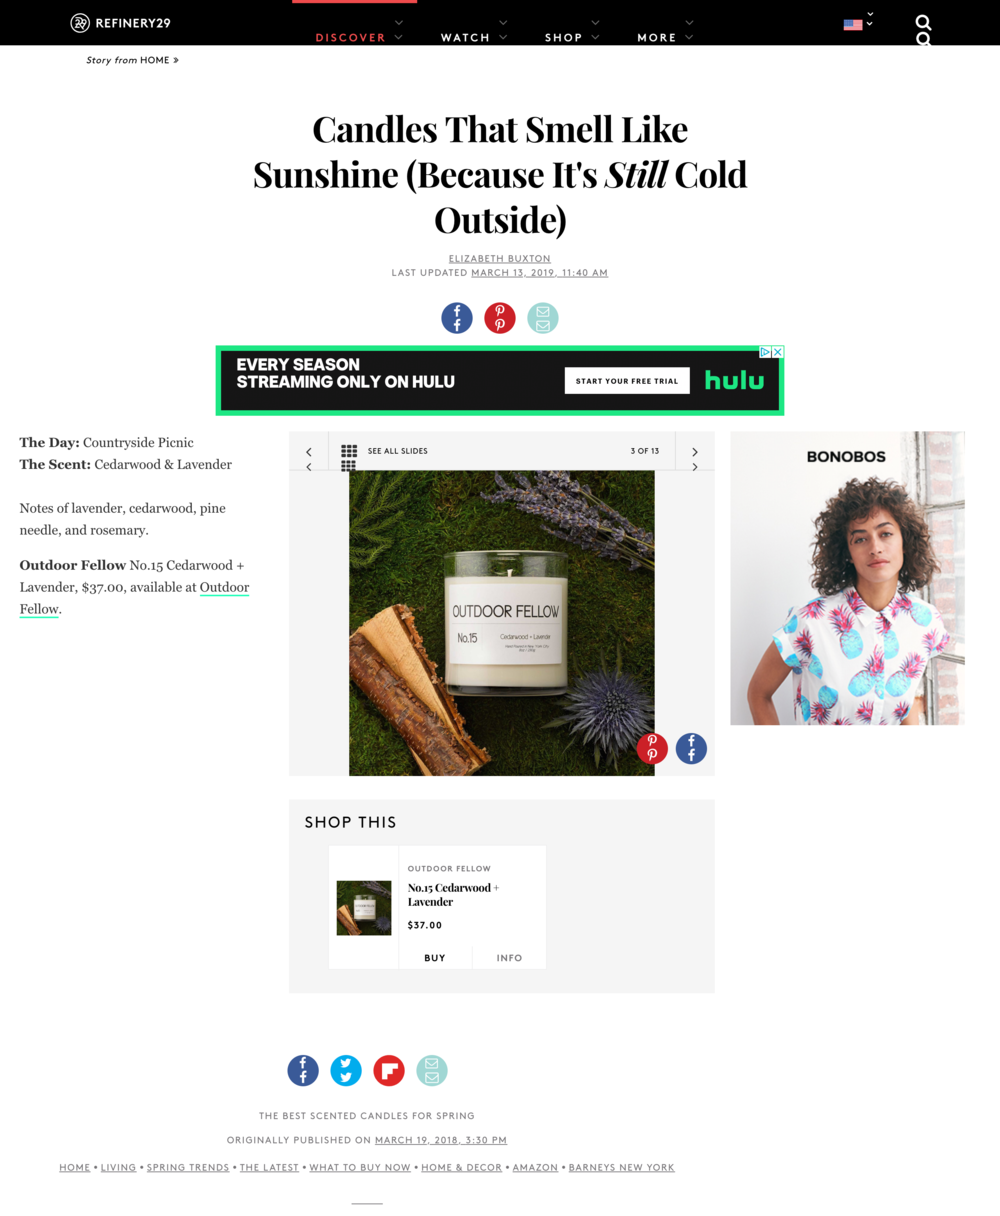 Refinery29 - Outdoor Fellow - 3-13-19.png